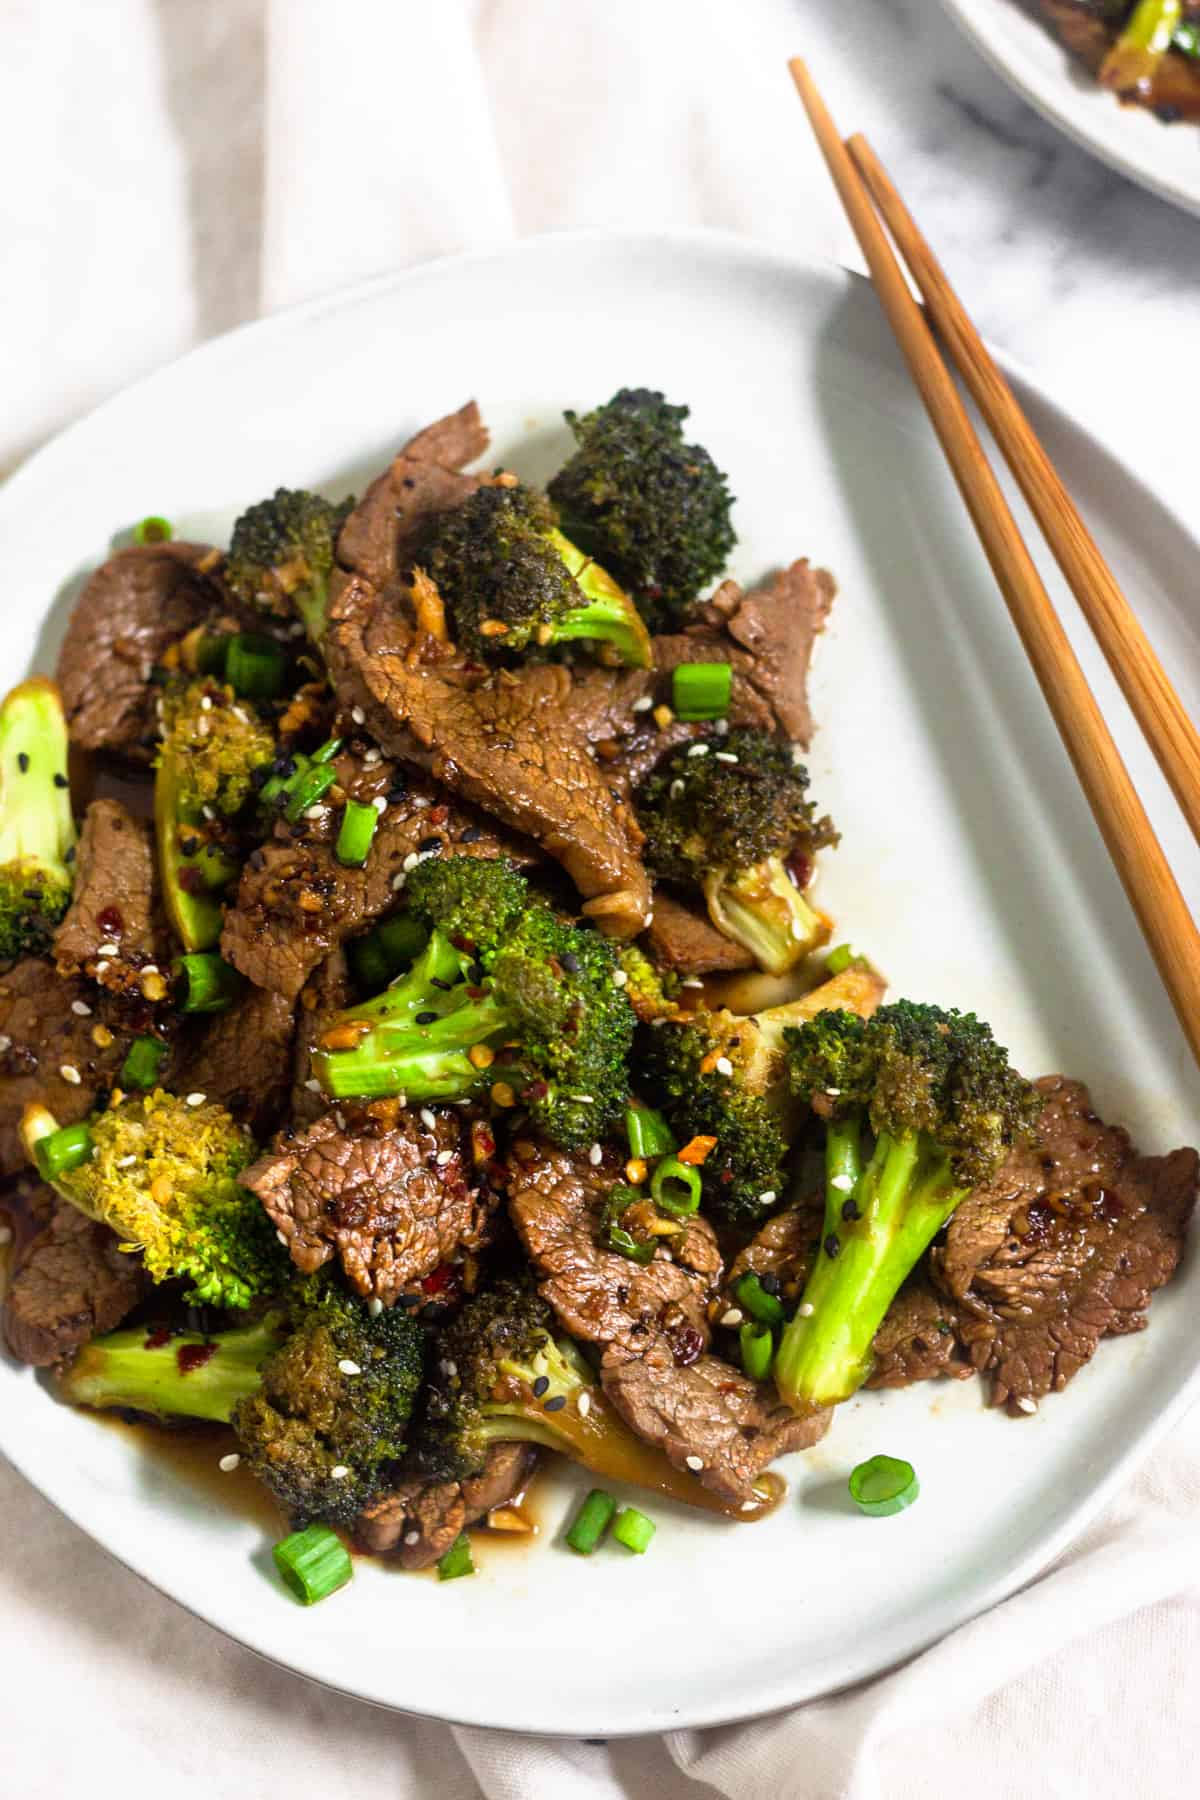 Large plate filled with healthy paleo beef & broccoli with wooden chop sticks sitting on the side of it